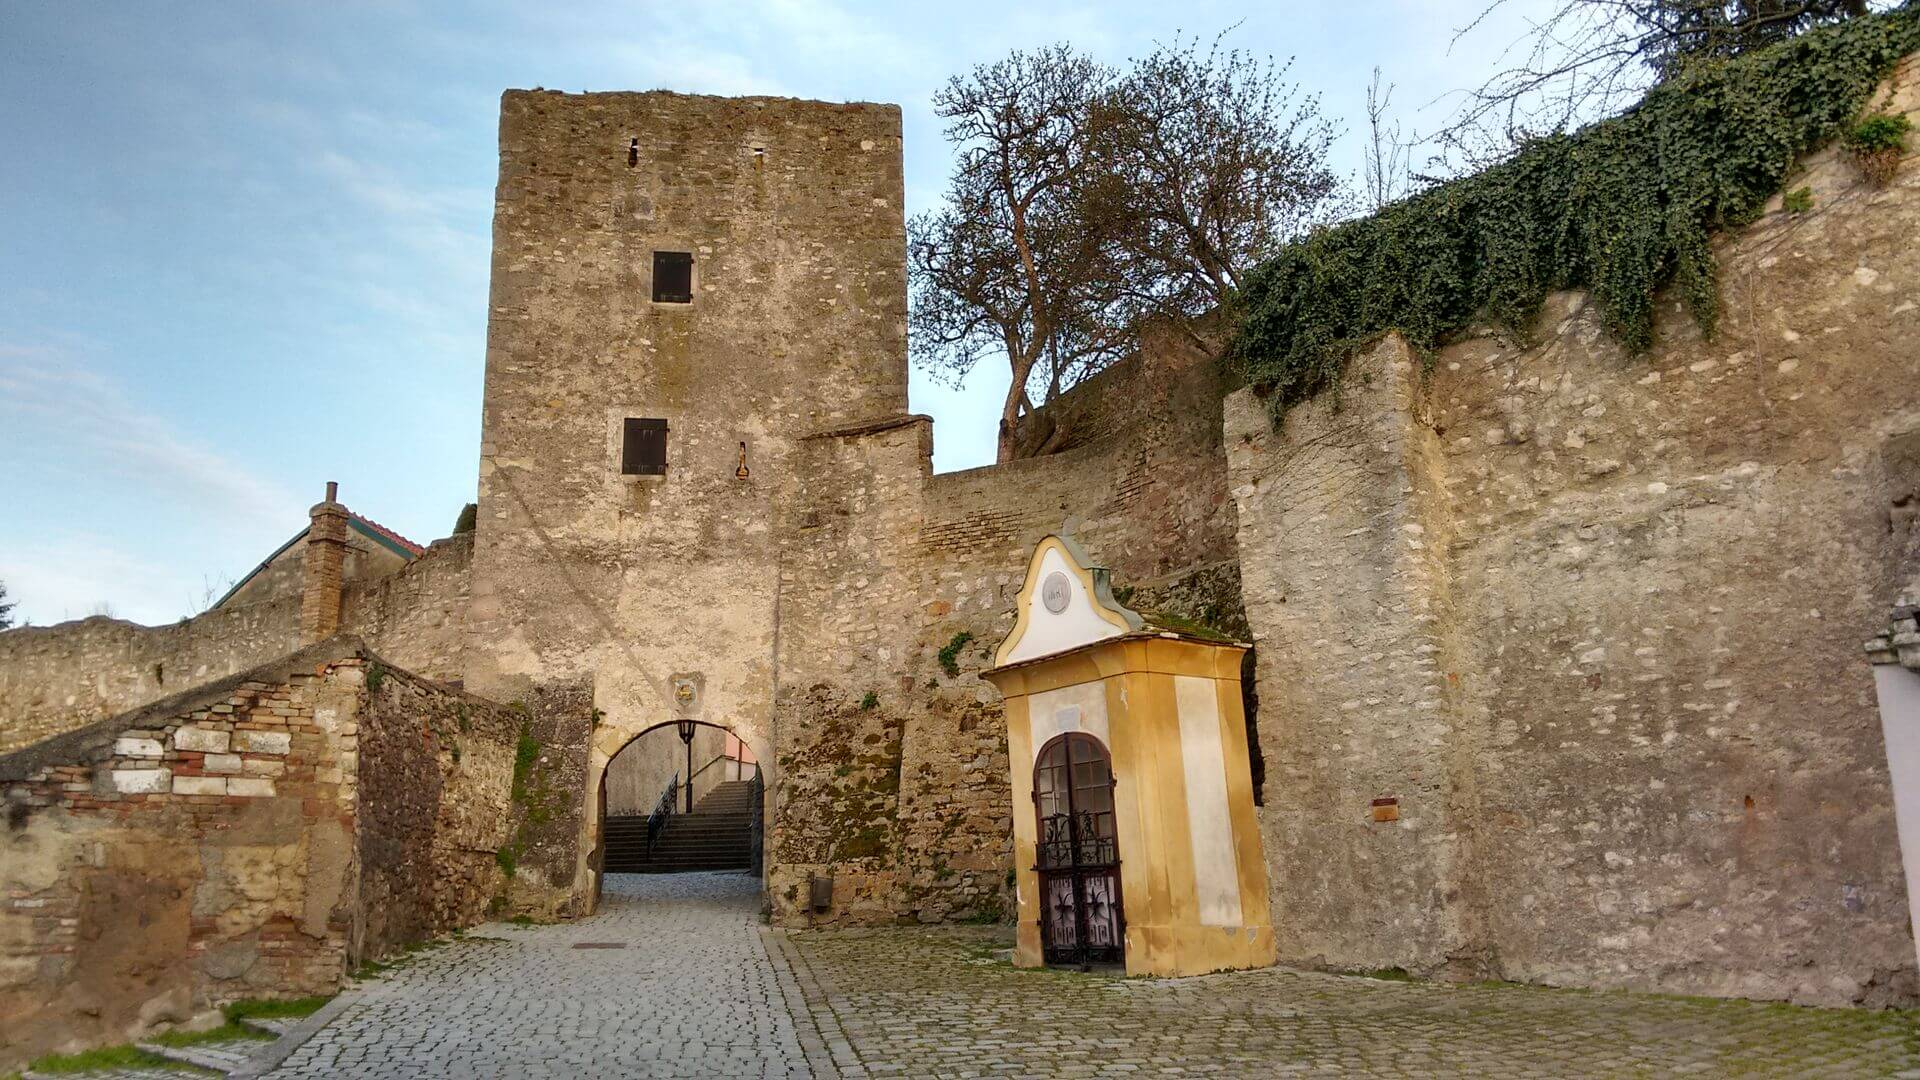 medieval fortifications in Hainburg